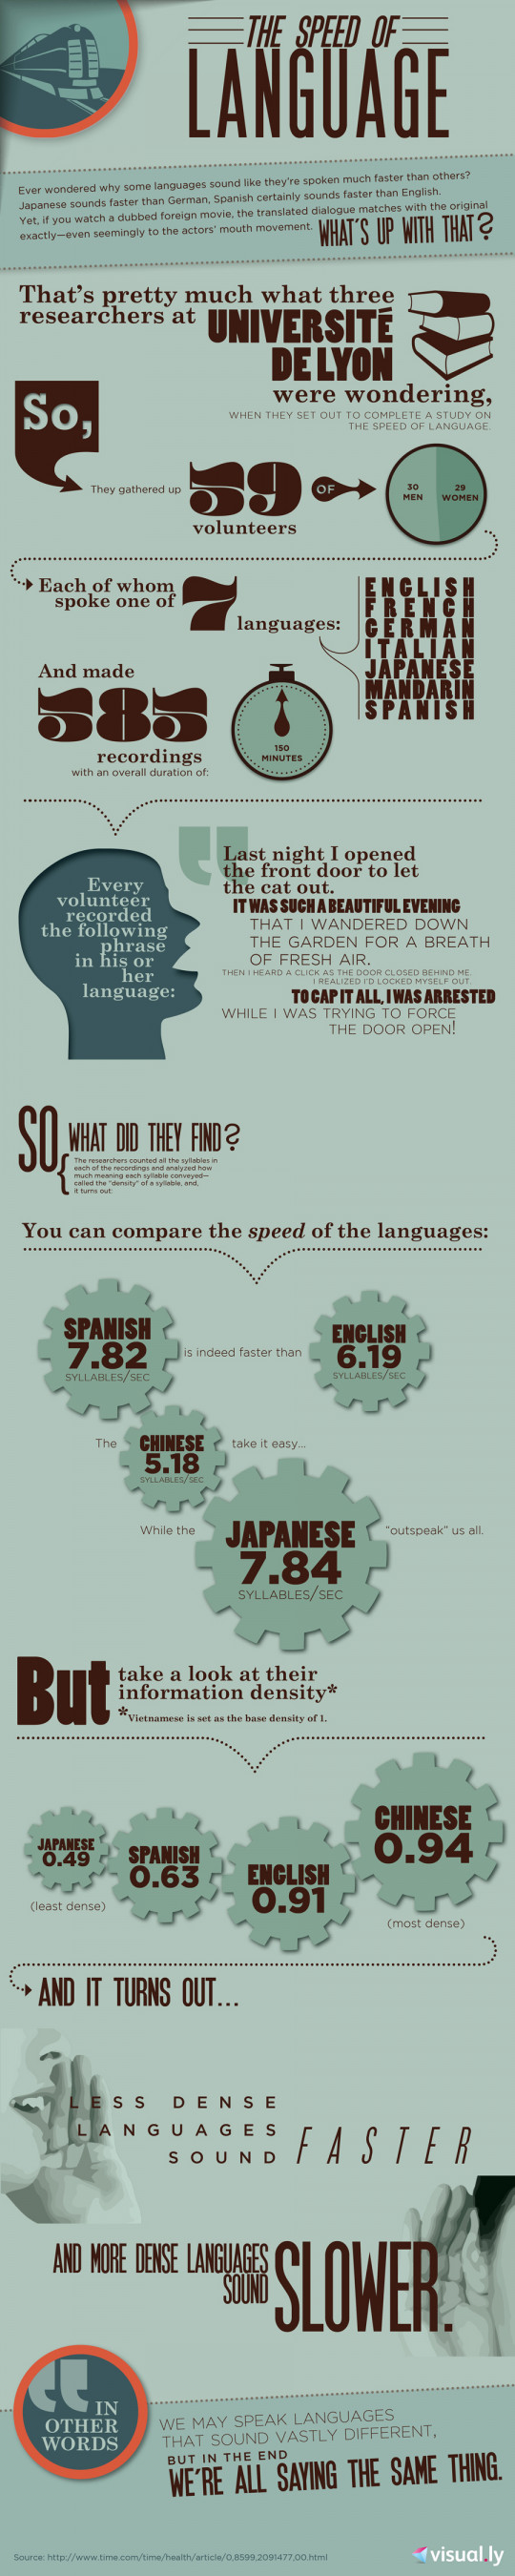 The Speed of Language